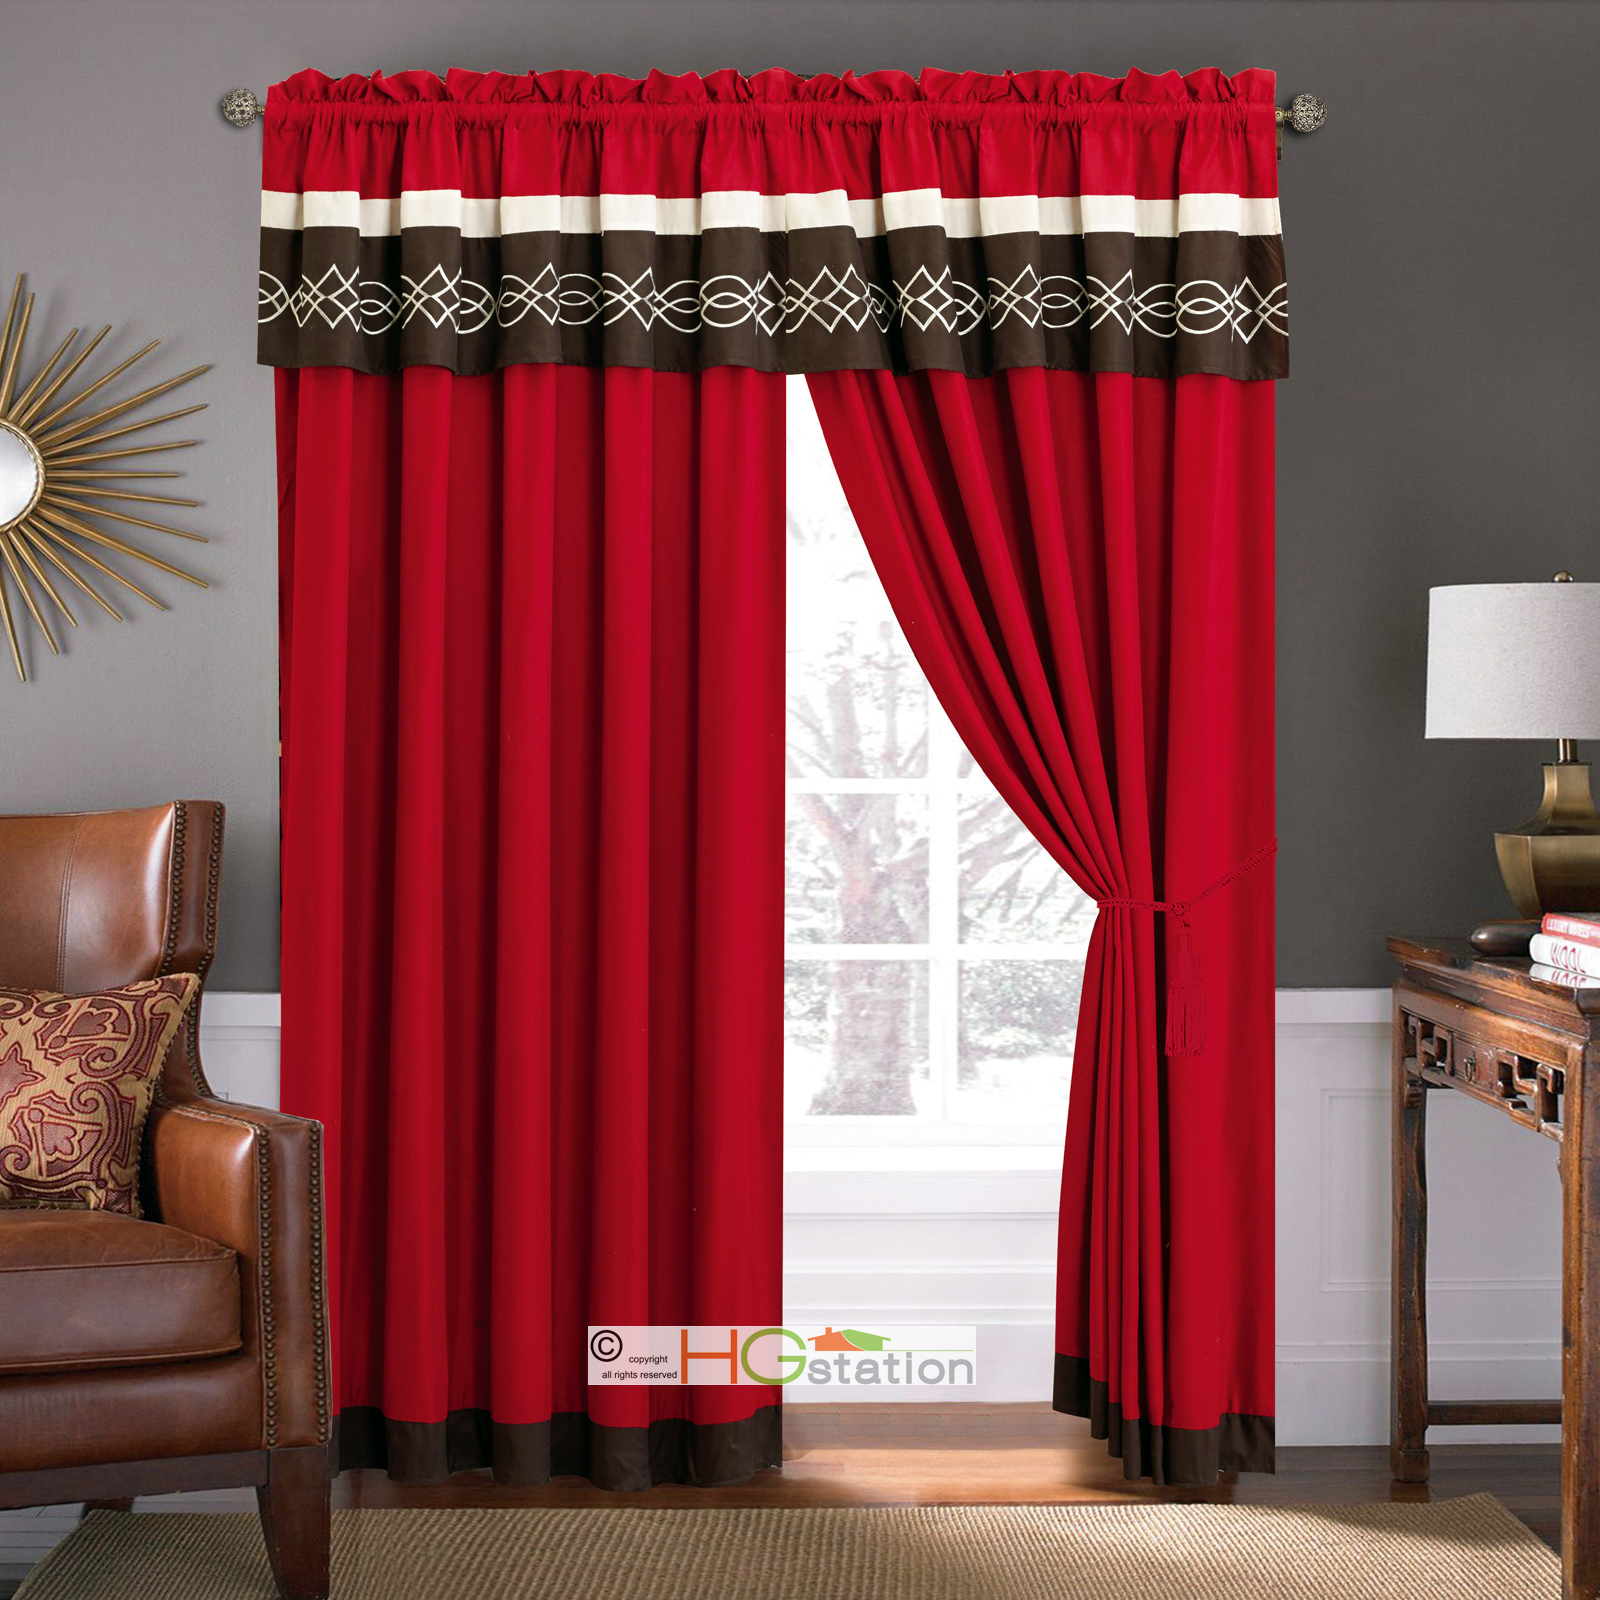 Chili Pepper Kitchen Curtains: 11-Pc Quilted Clamshell Embroidery Comforter Curtain Set